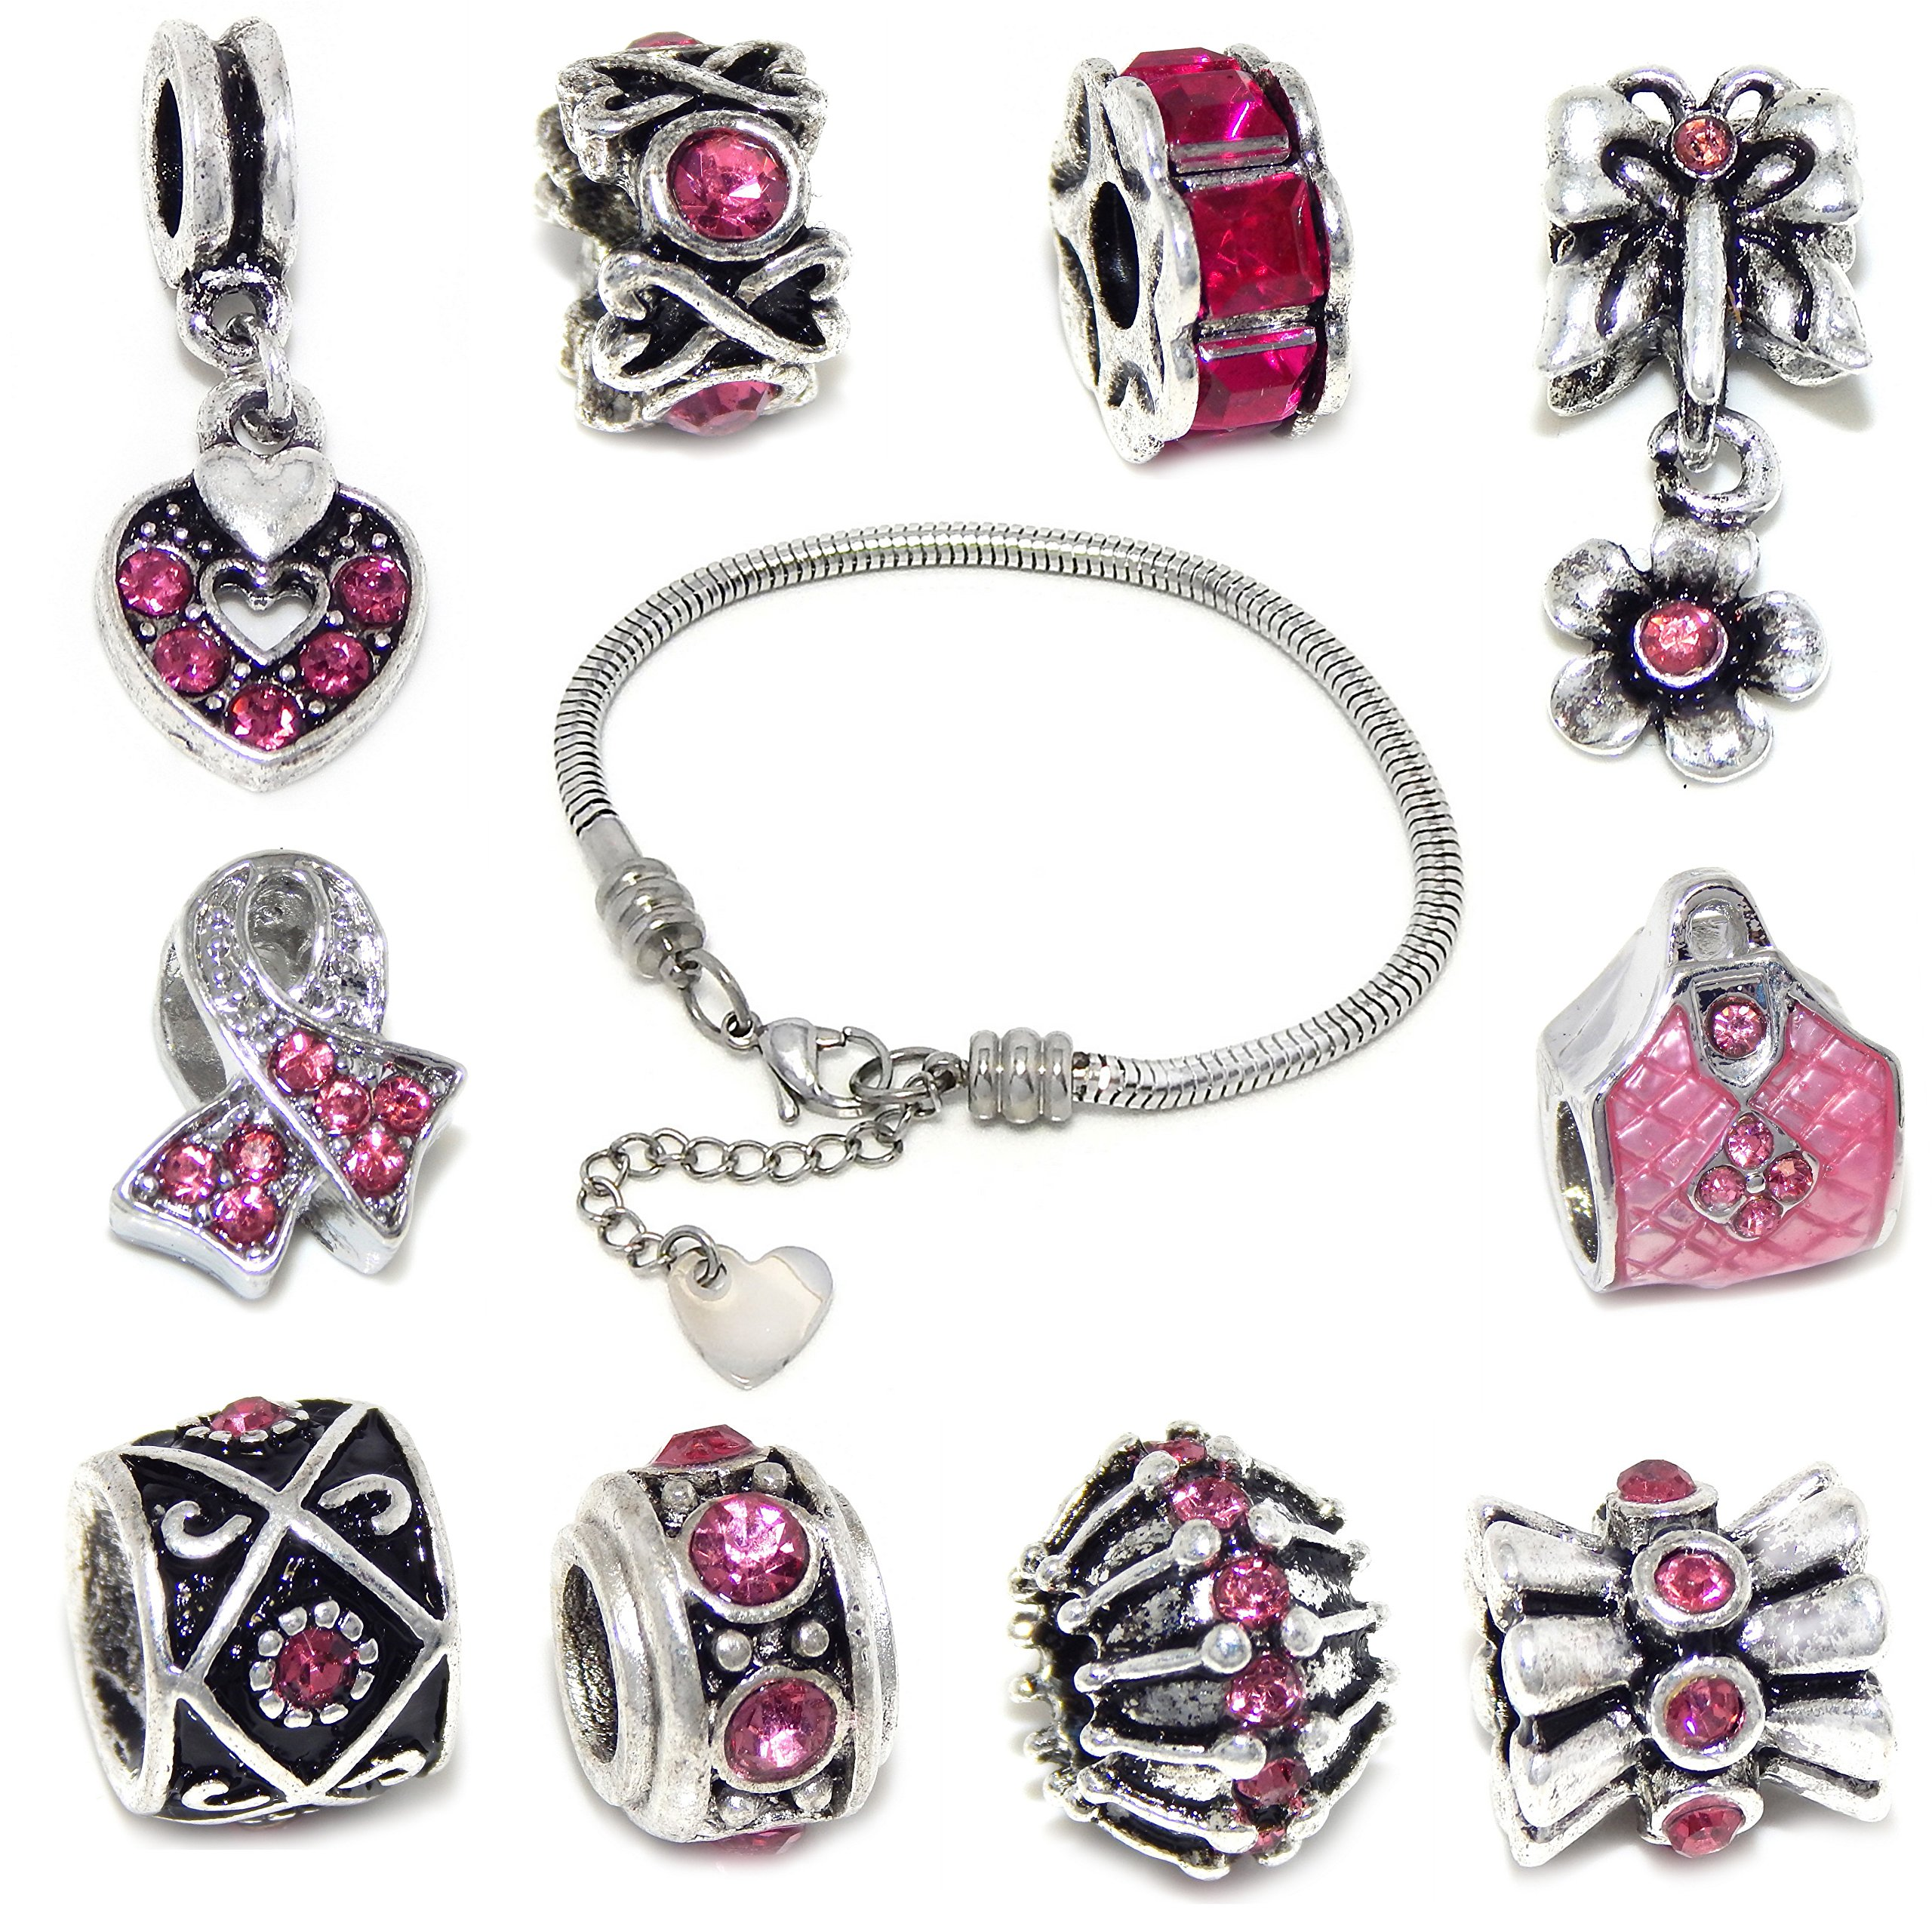 Stainless Steel Starter Charm Bracelet + FREE 10 Silver Plated with Pink Crystals Charms (7 Inch)